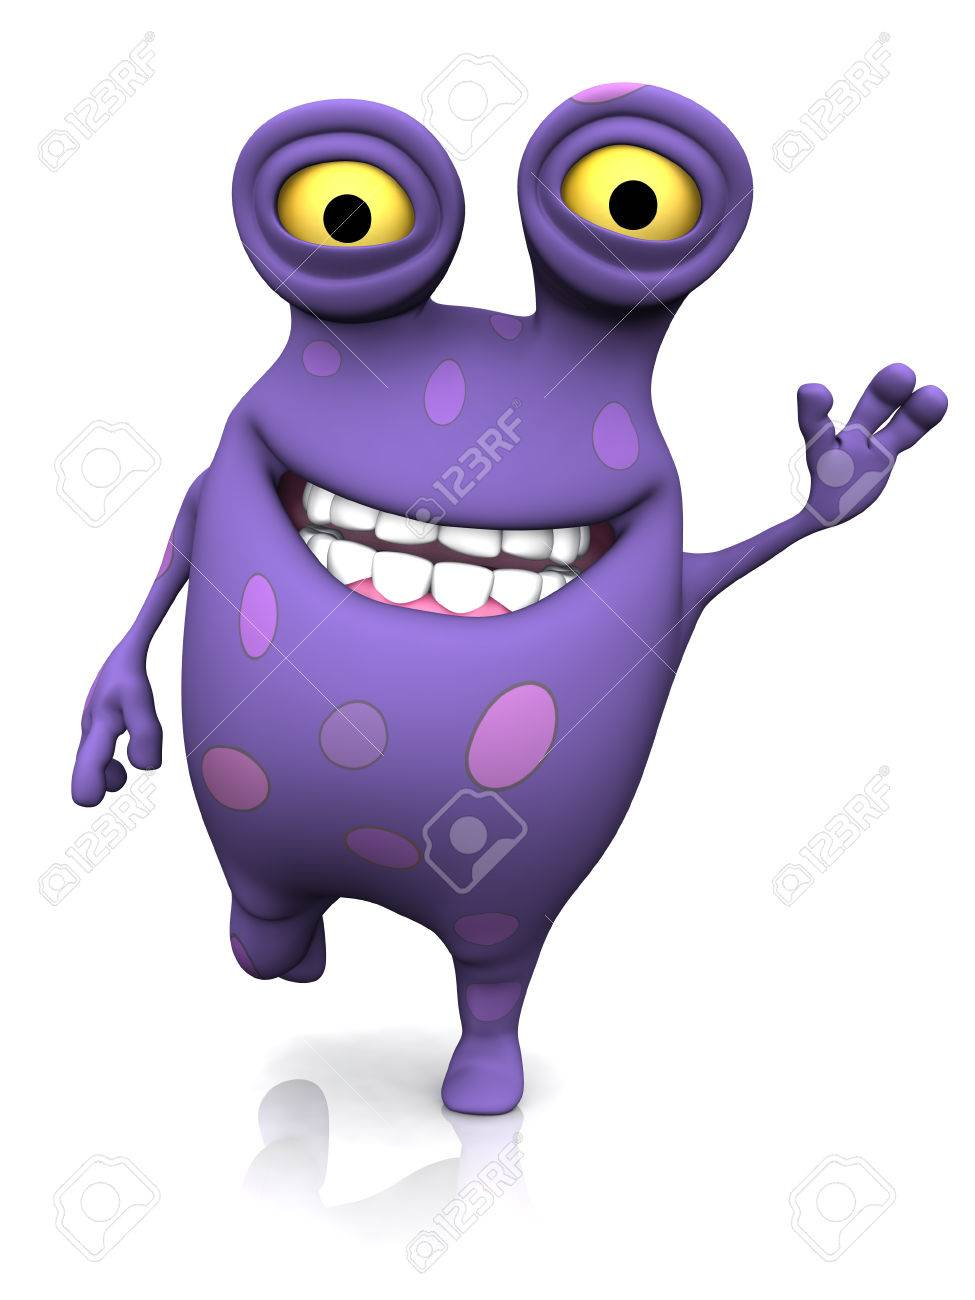 a cute charming cartoon monster waving its hand and looking very